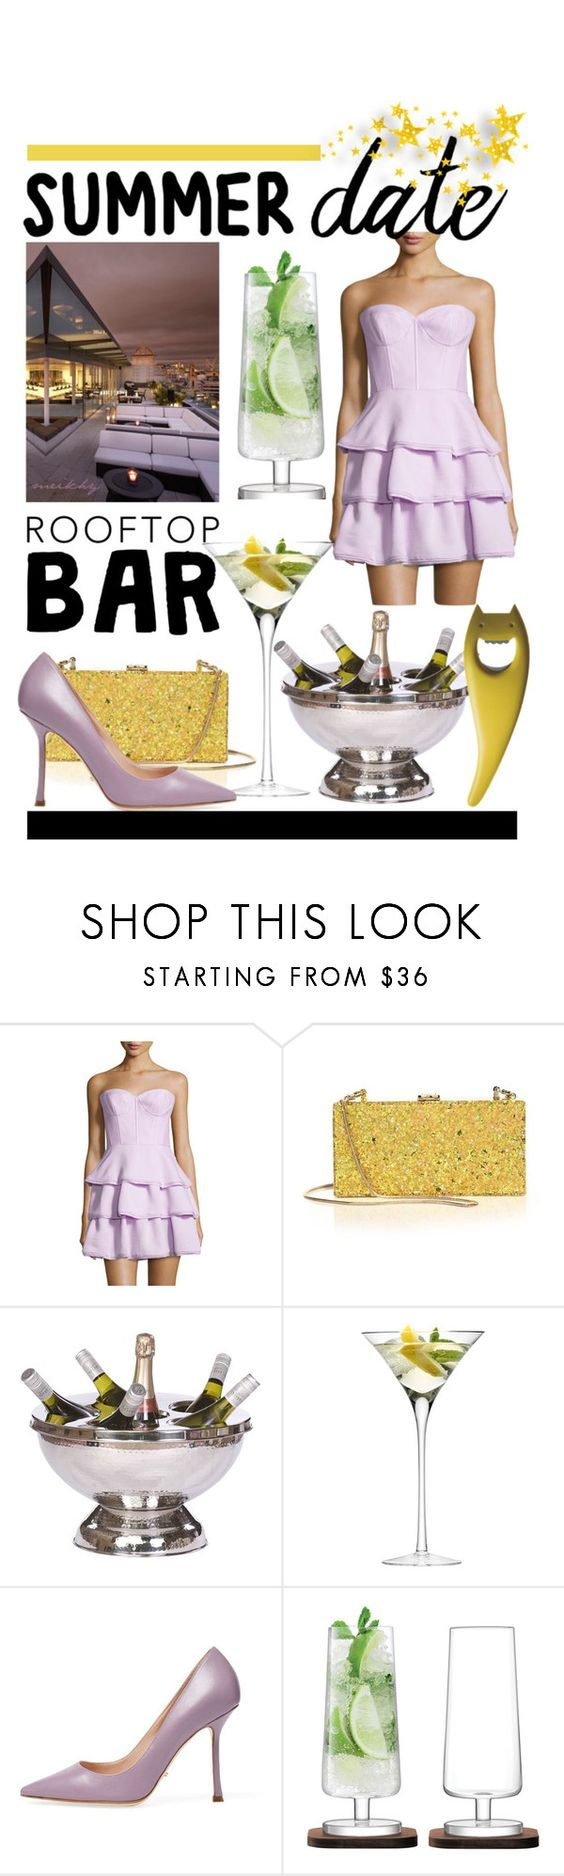 """""""contest Summer Date Rooftop bar"""" by meikhy ❤ liked on Polyvore featuring BCBGMAXAZRIA, Milly, LSA International, Sergio Rossi, Alessi, summerdate and rooftopbar"""